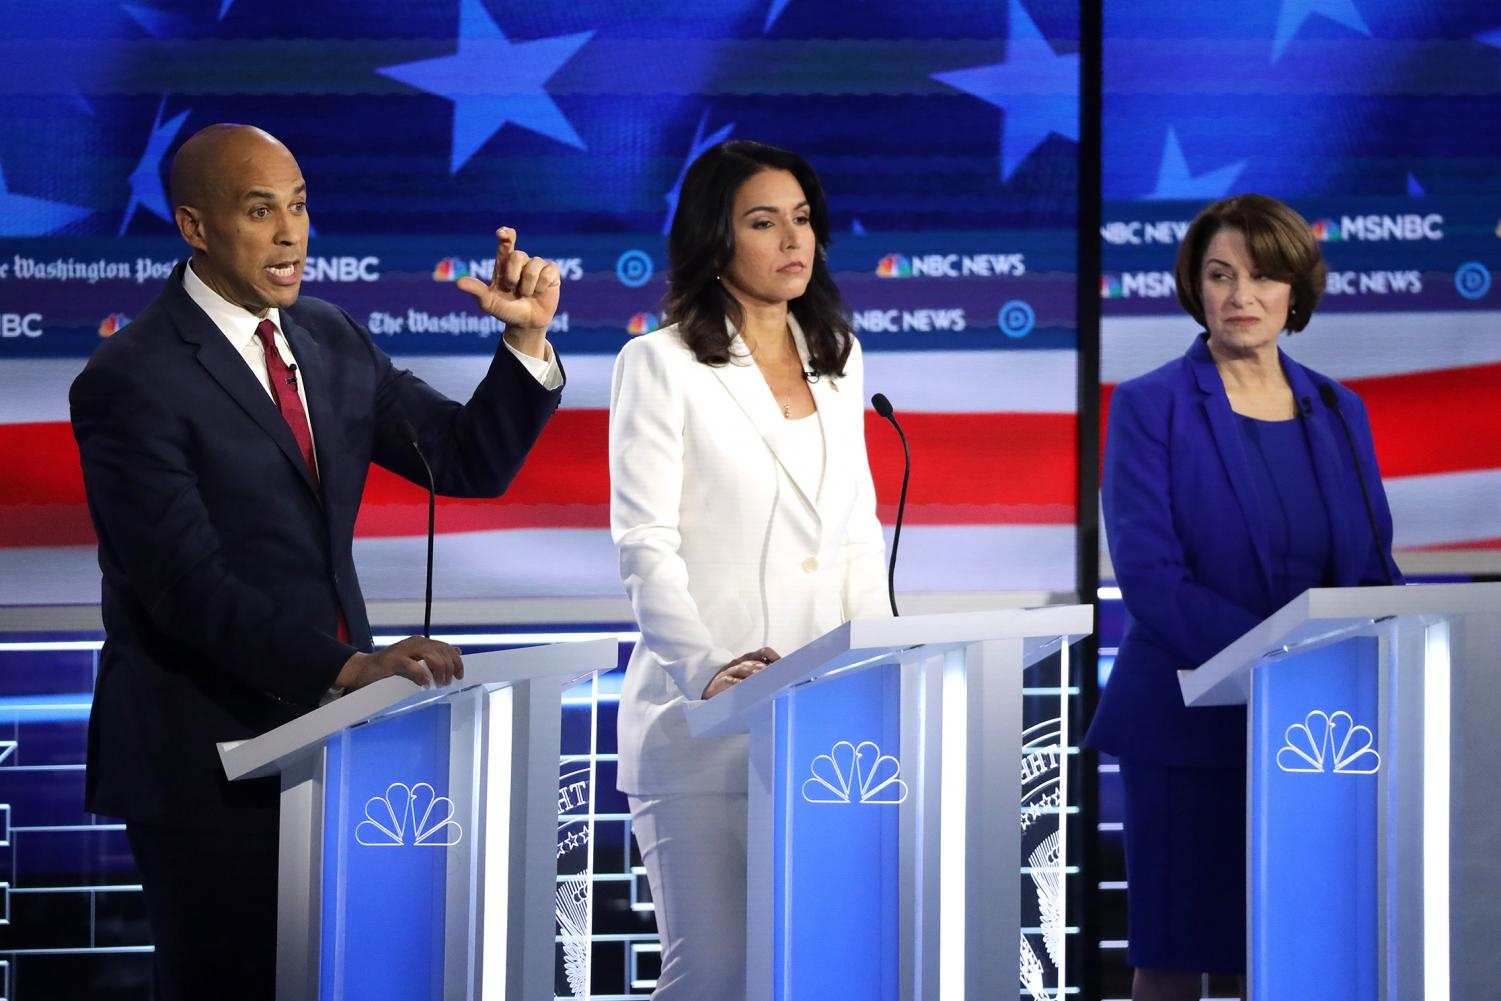 Democratic presidential nominees, Cory Booker (left), Tulsi Gabbard (middle), and Amy Klobuchar (right), at the Democratic Presidential Debate on November 20, 2019.